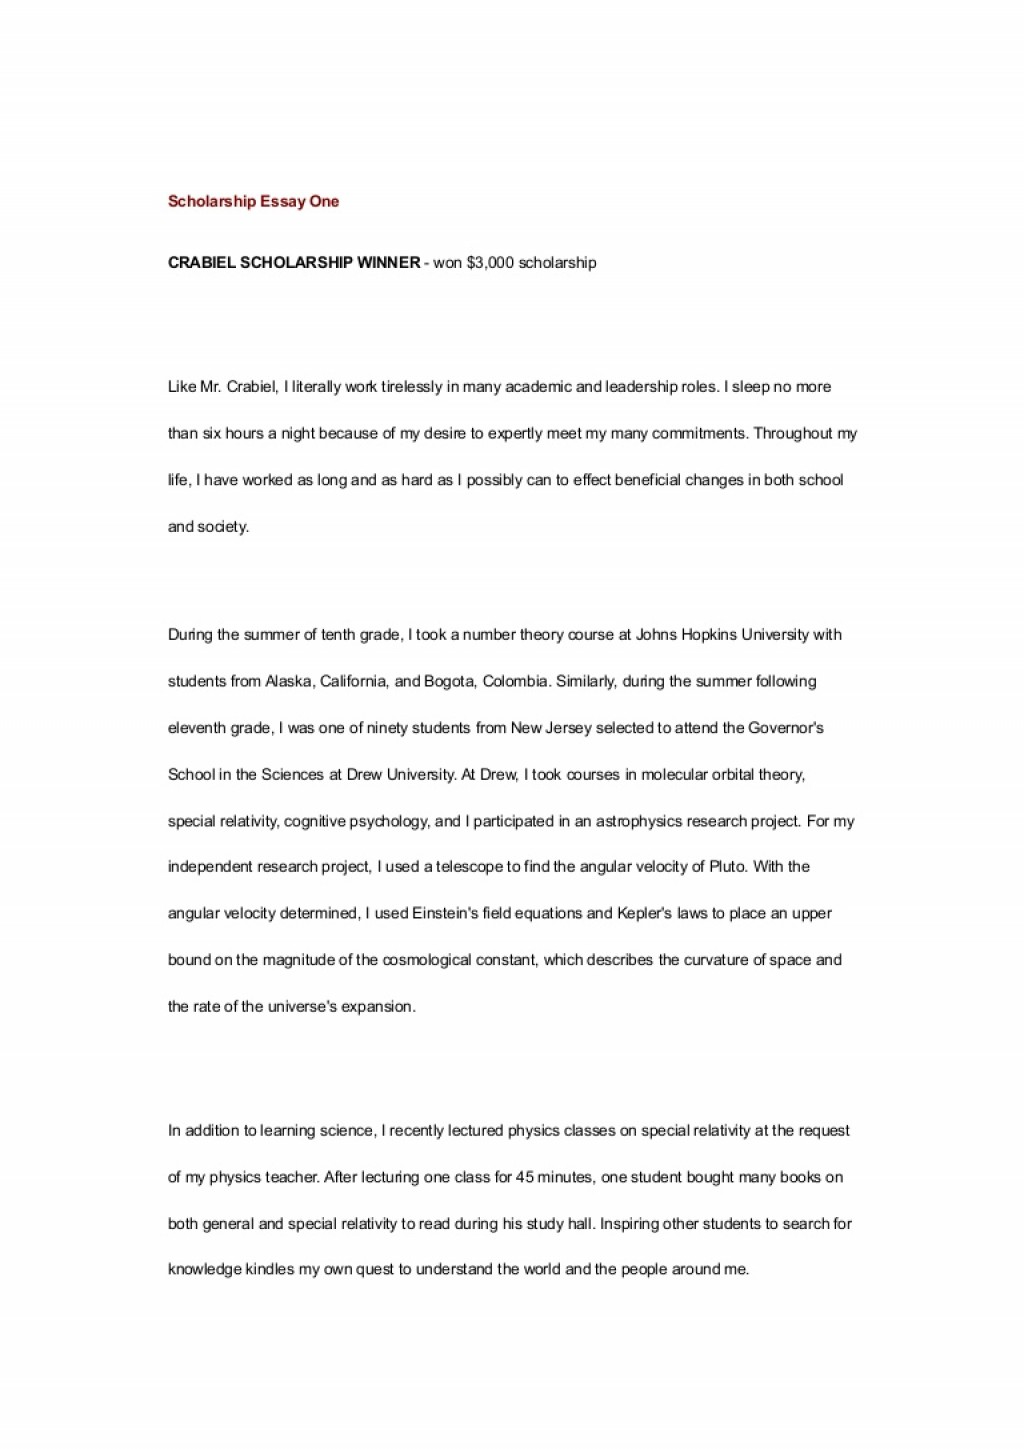 002 Scholarshipessayone Phpapp01 Thumbnail Essay Example Phenomenal Scholarship Prompts Ideas College Format Large